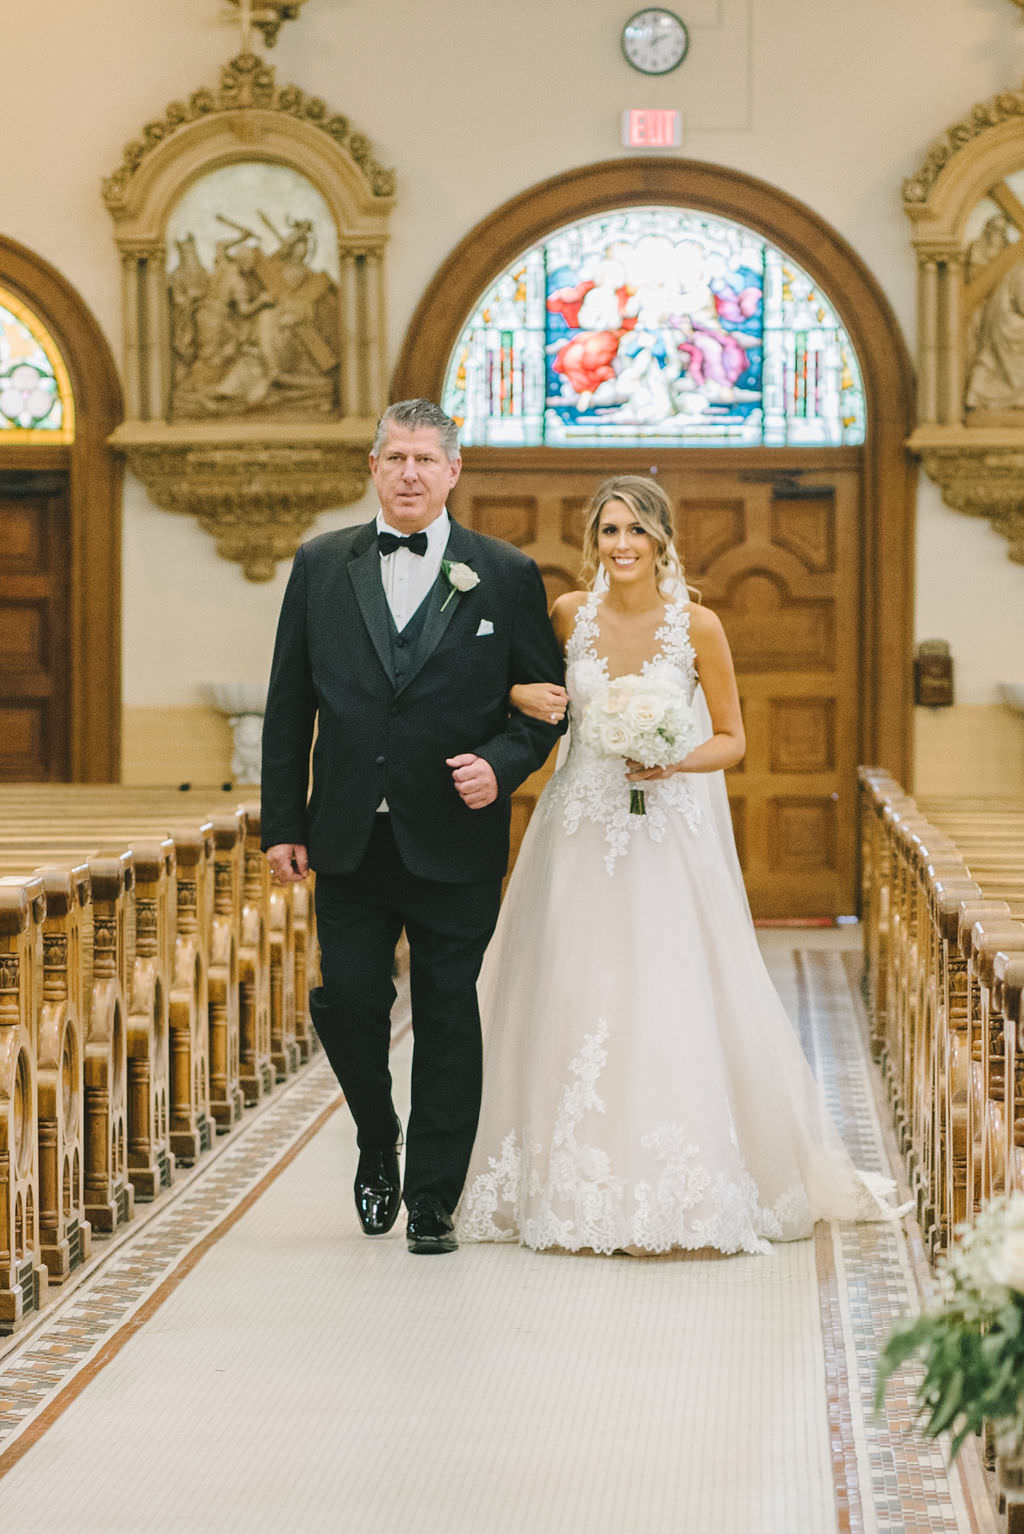 Bride and Father of the Bride Walking Down Ceremony Aisle   Tampa Wedding Photographer Kera Photography   Traditional Wedding Ceremony Venue Sacred Heart Catholic Church